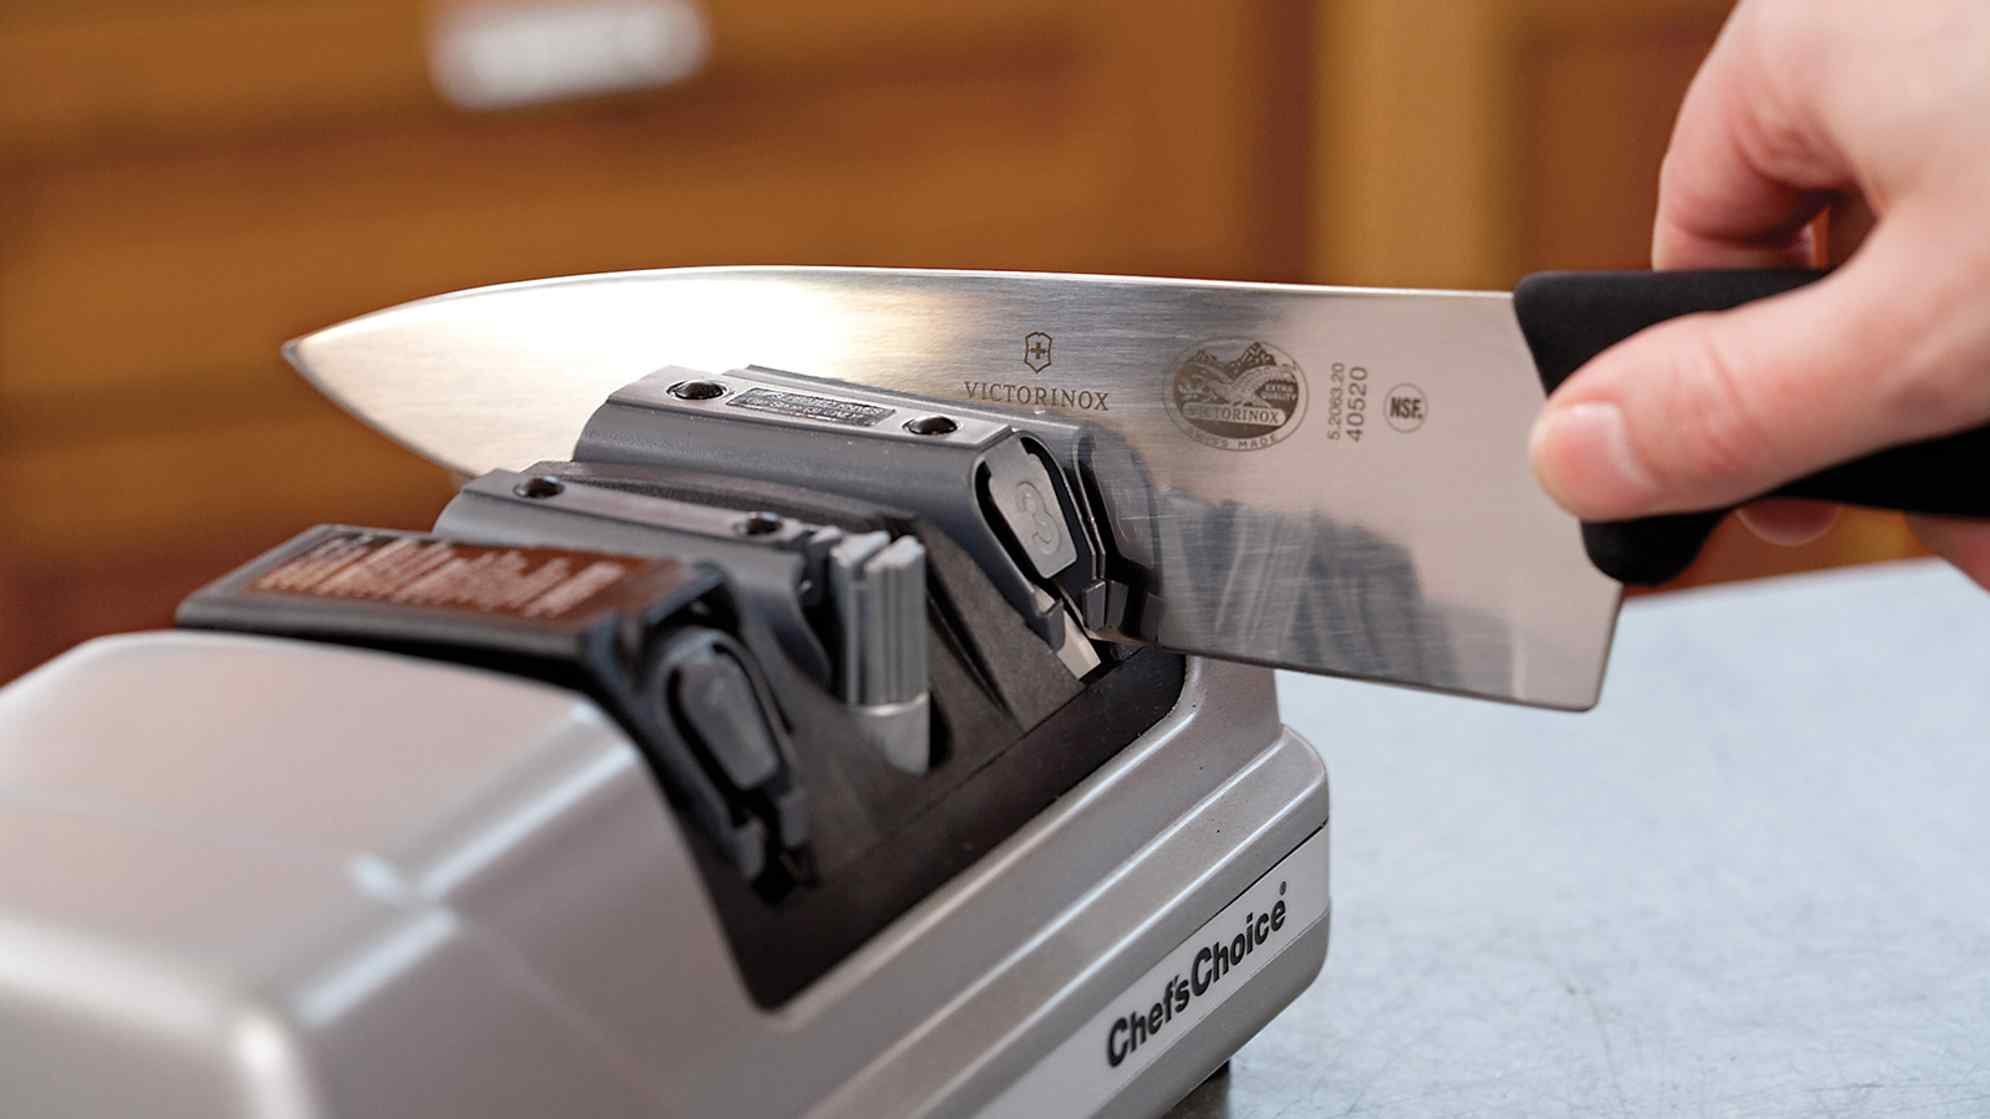 How to sharpen the knife correctly